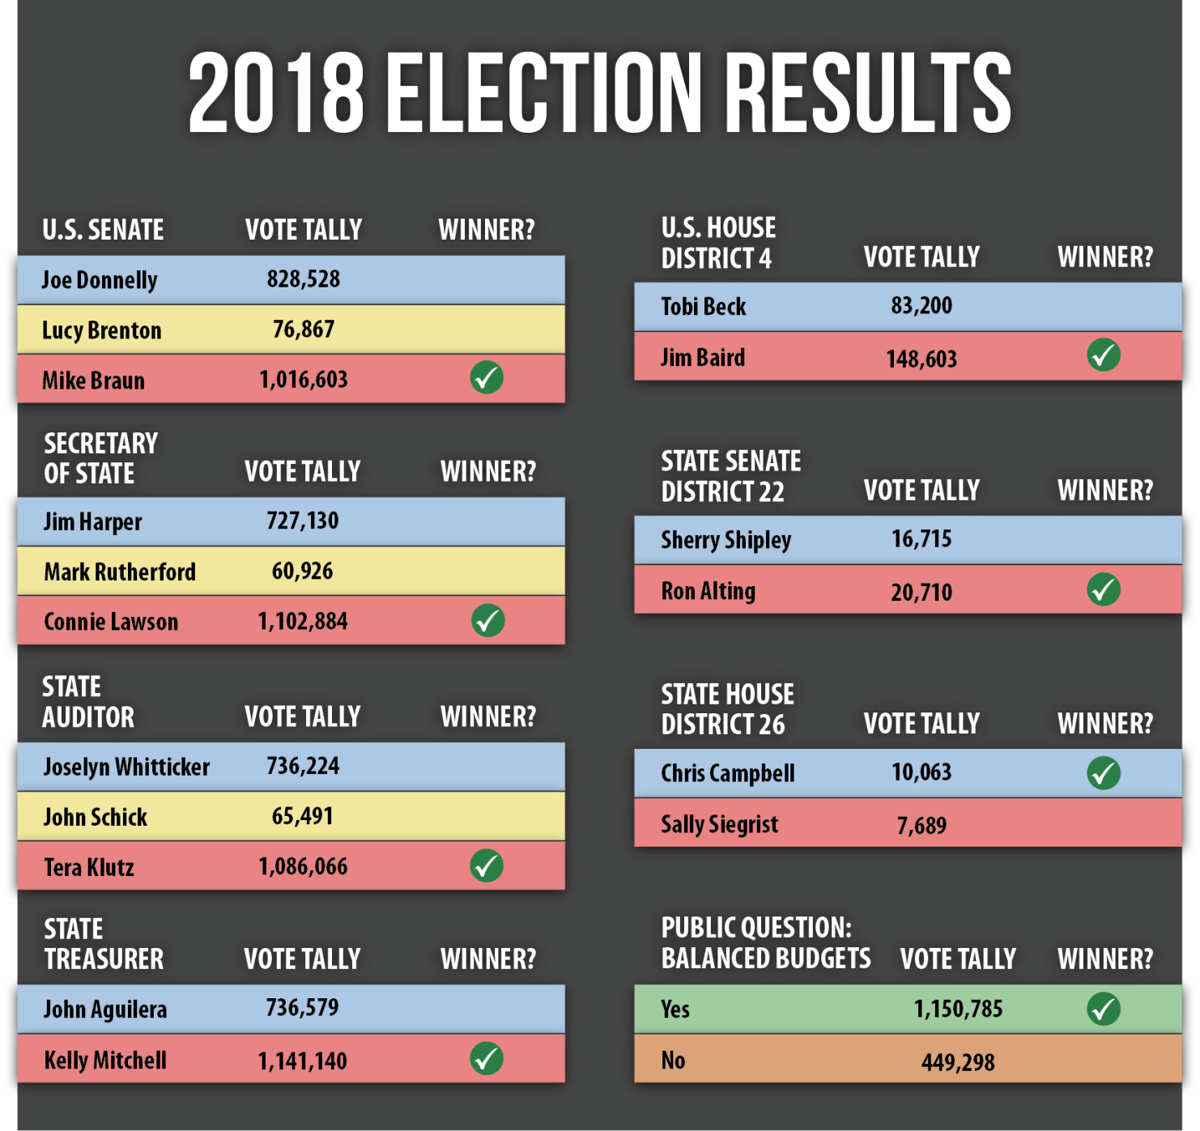 2018 Election Results